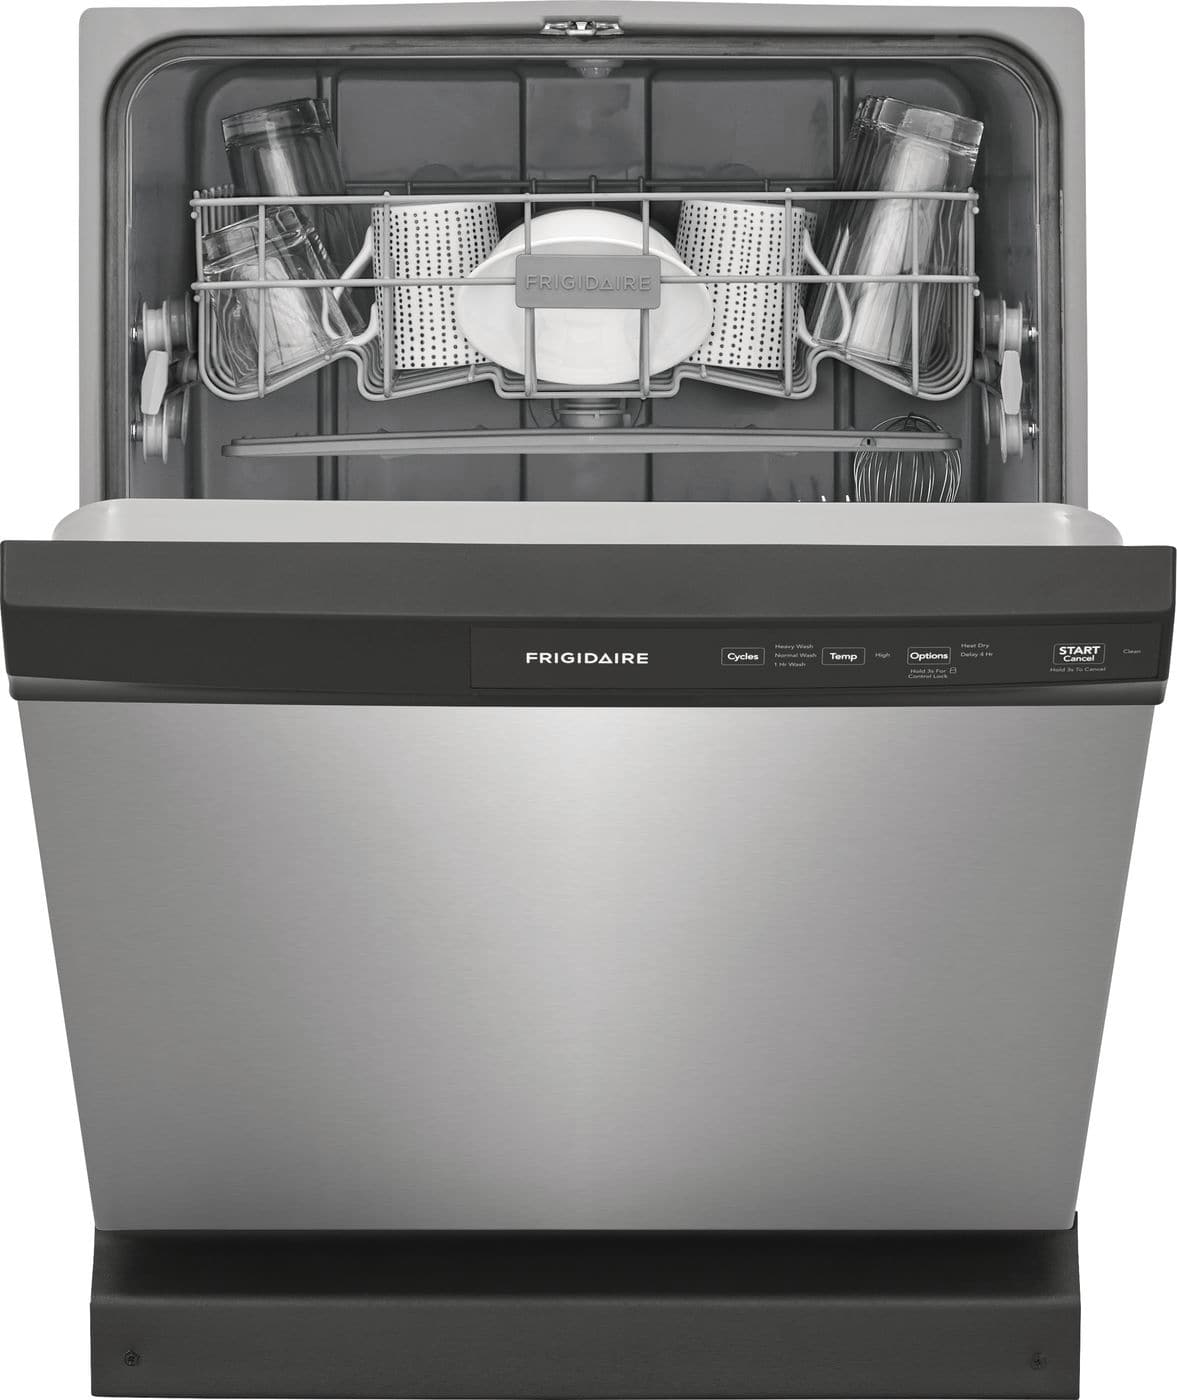 "Model: FFCD2413US | Frigidaire 24"" Built-In Dishwasher"